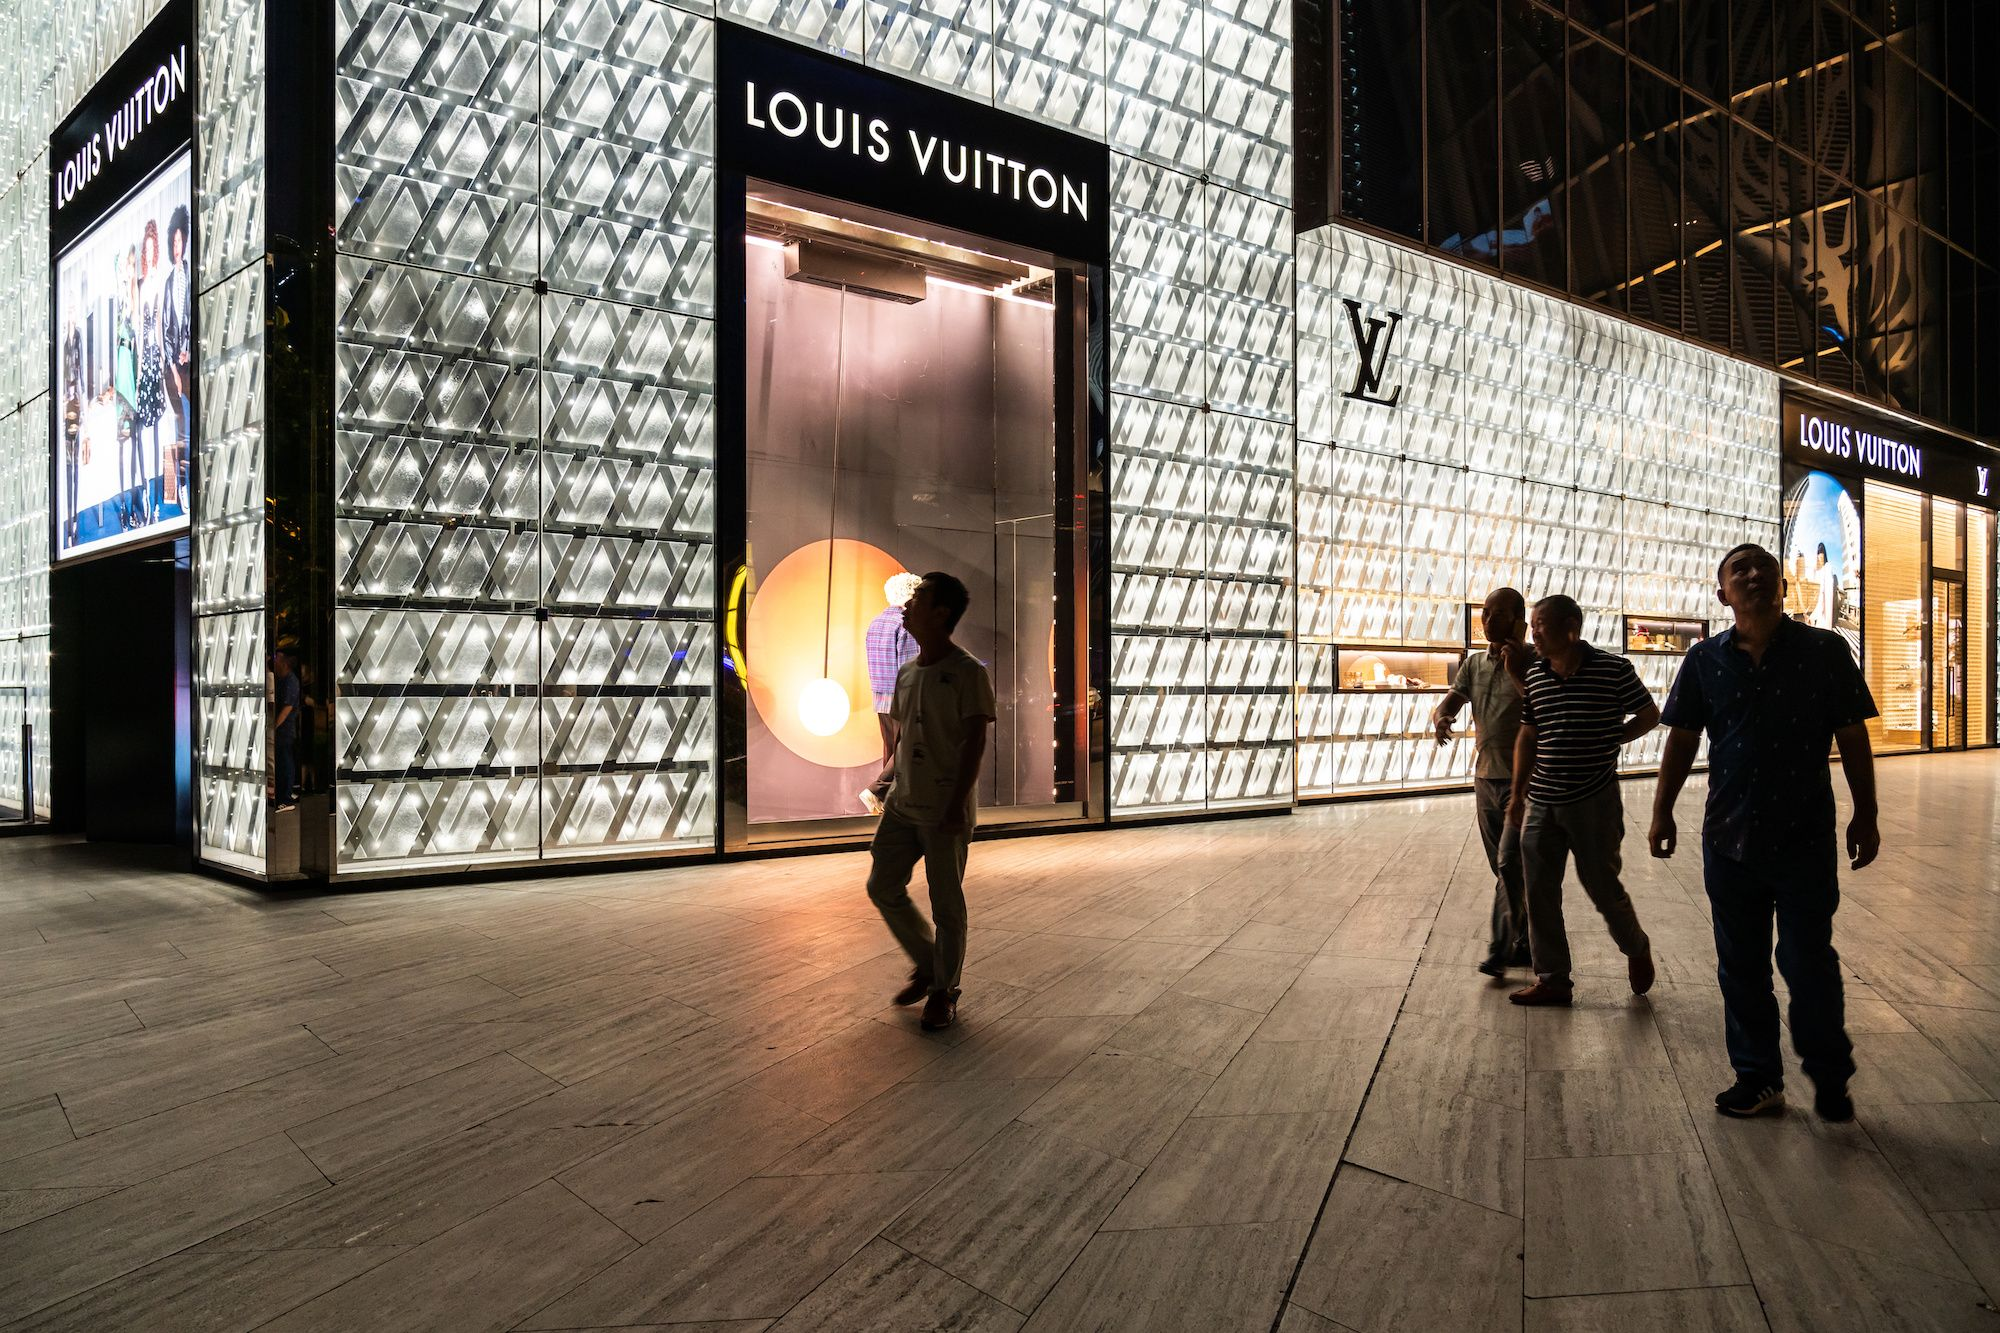 Louis Vuitton's Shanghai Flagship Sees Record-Breaking $22 Million In Sales This Month